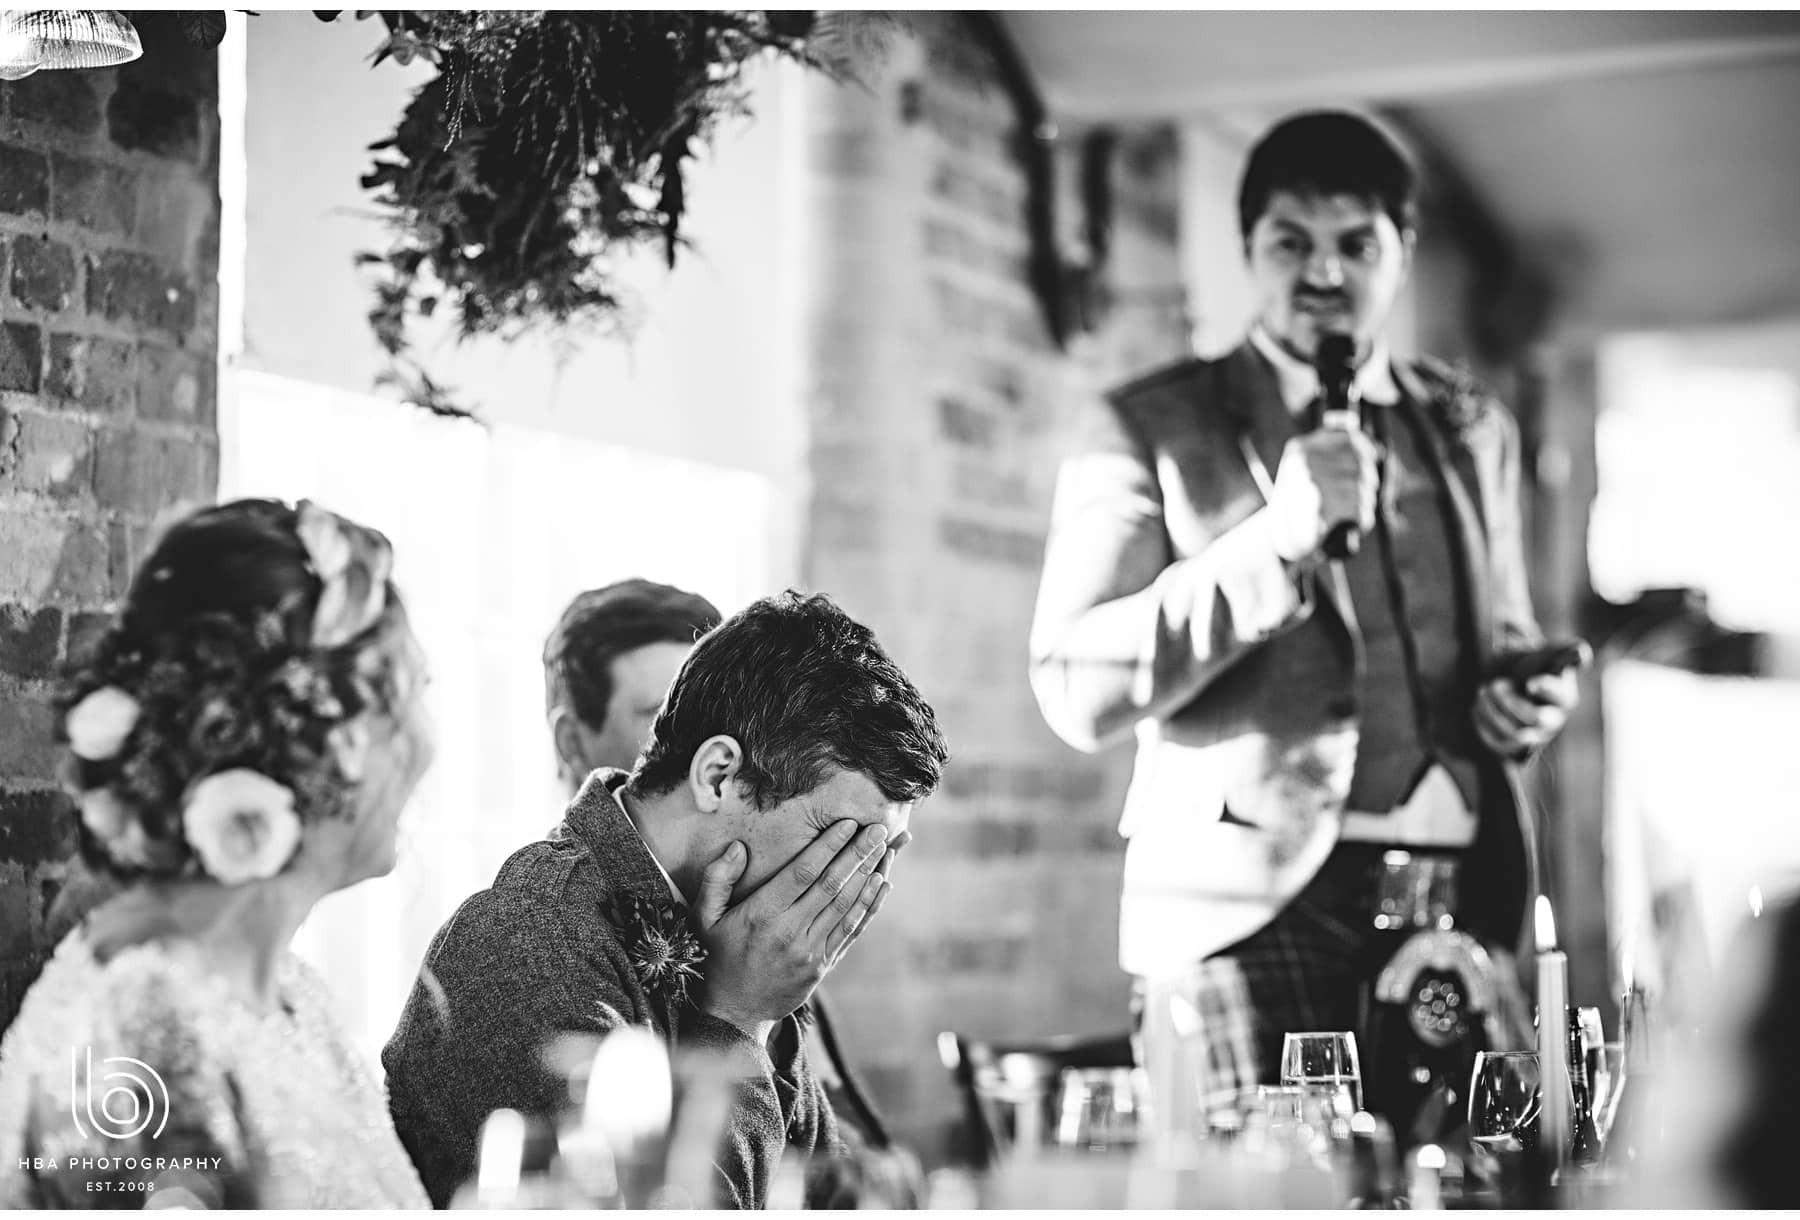 the best man embarrasing the groom